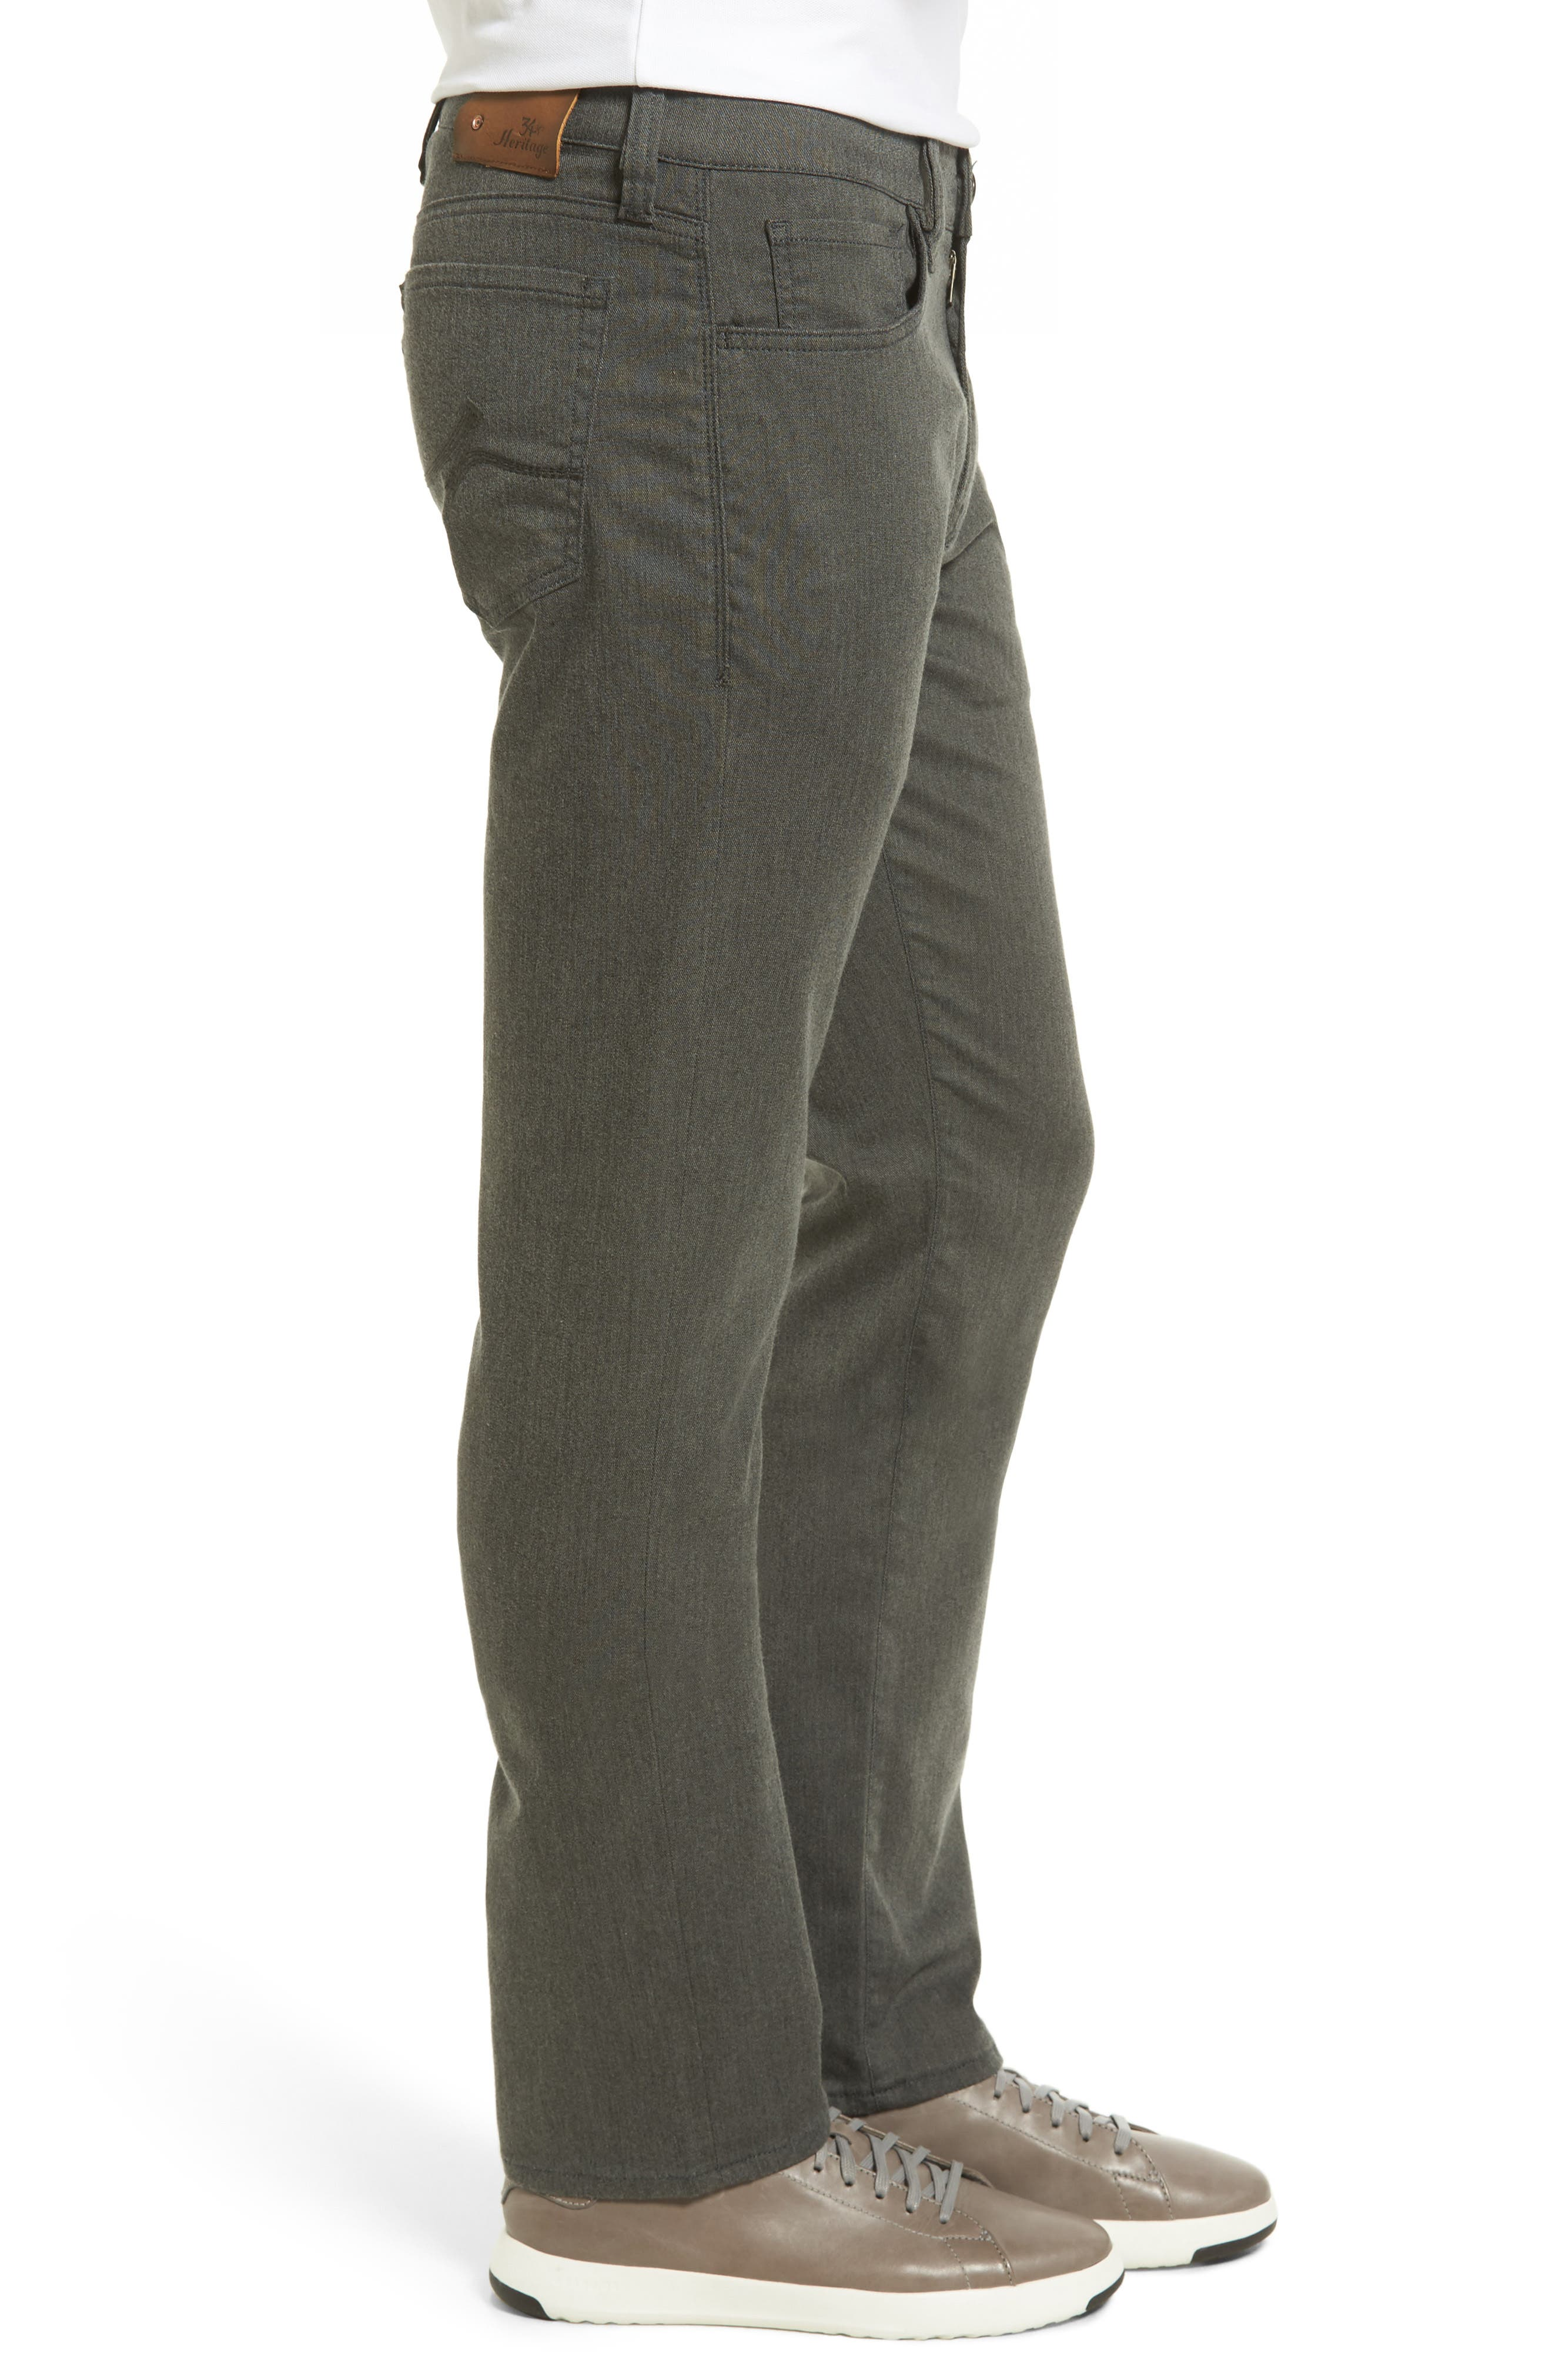 34 HERITAGE,                             Courage Straight Leg Jeans,                             Alternate thumbnail 3, color,                             020